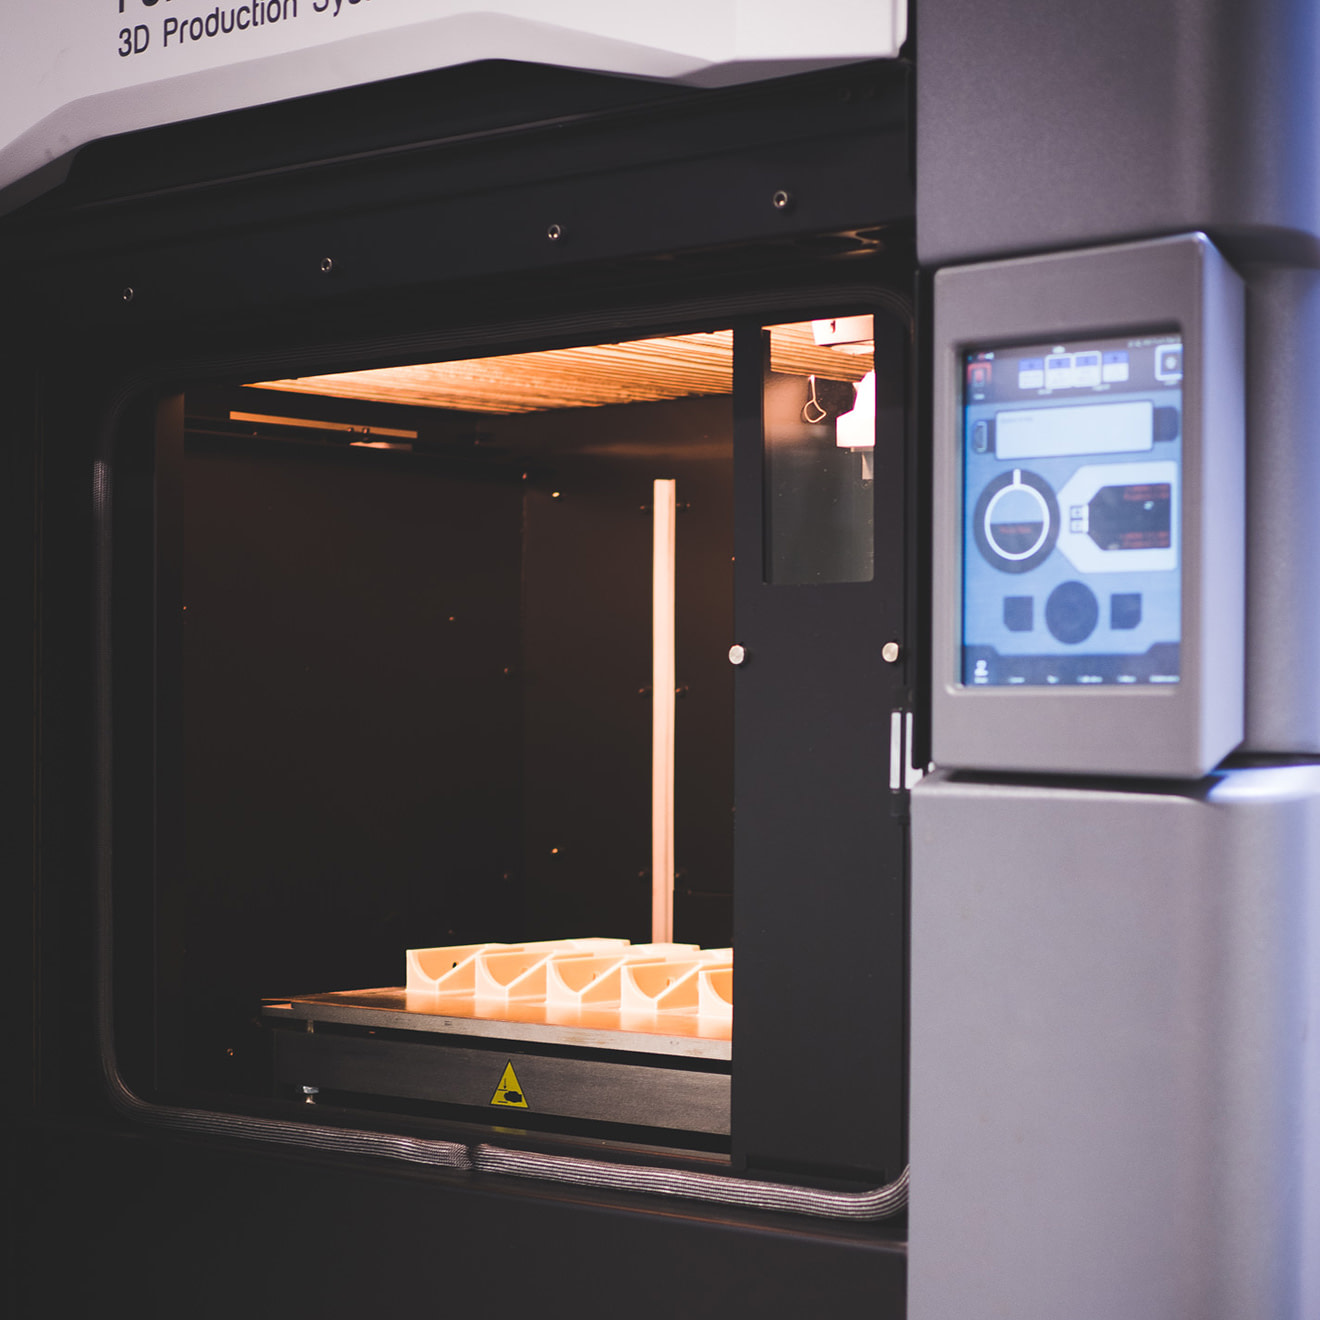 A 3D printer in use making something with orange plastic